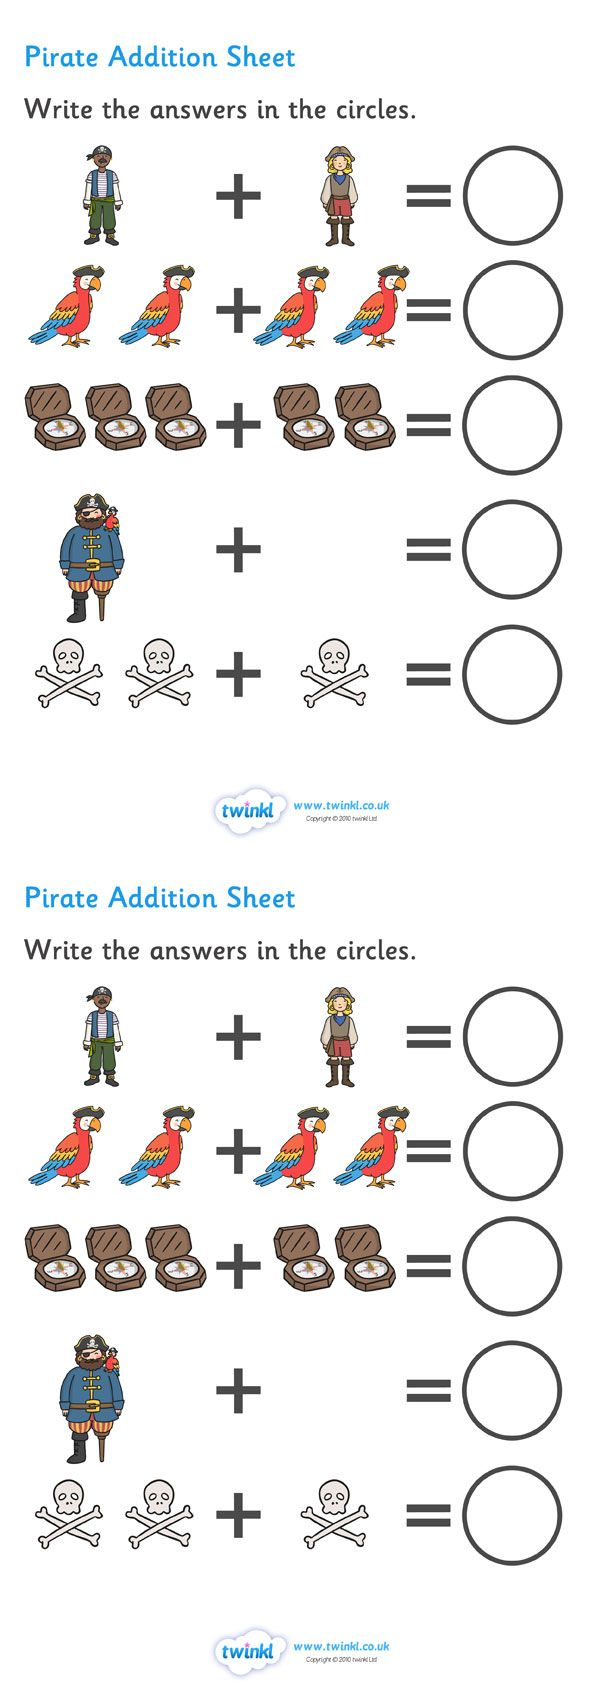 Twinkl Resources >> Pirate Addition Sheet  >> Thousands of printable primary teaching resources for EYFS, KS1, KS2 and beyond! pirate, pirate themed, pirate addition sheet, pirate counting, pirate numeracy, counting,